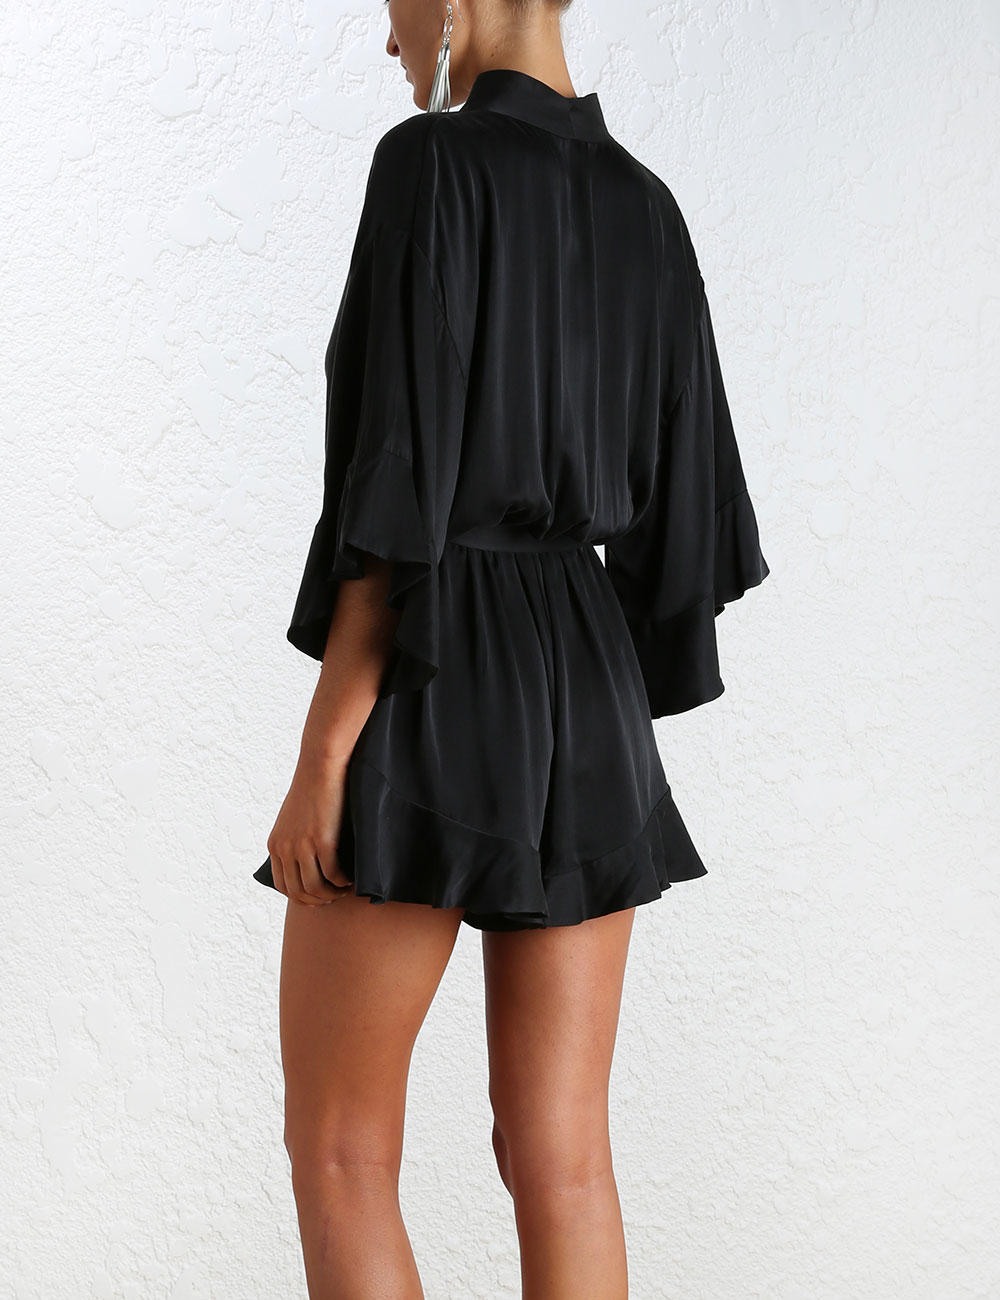 847f8a63aa3 Lyst - Zimmermann Empire Sueded Playsuit in Black